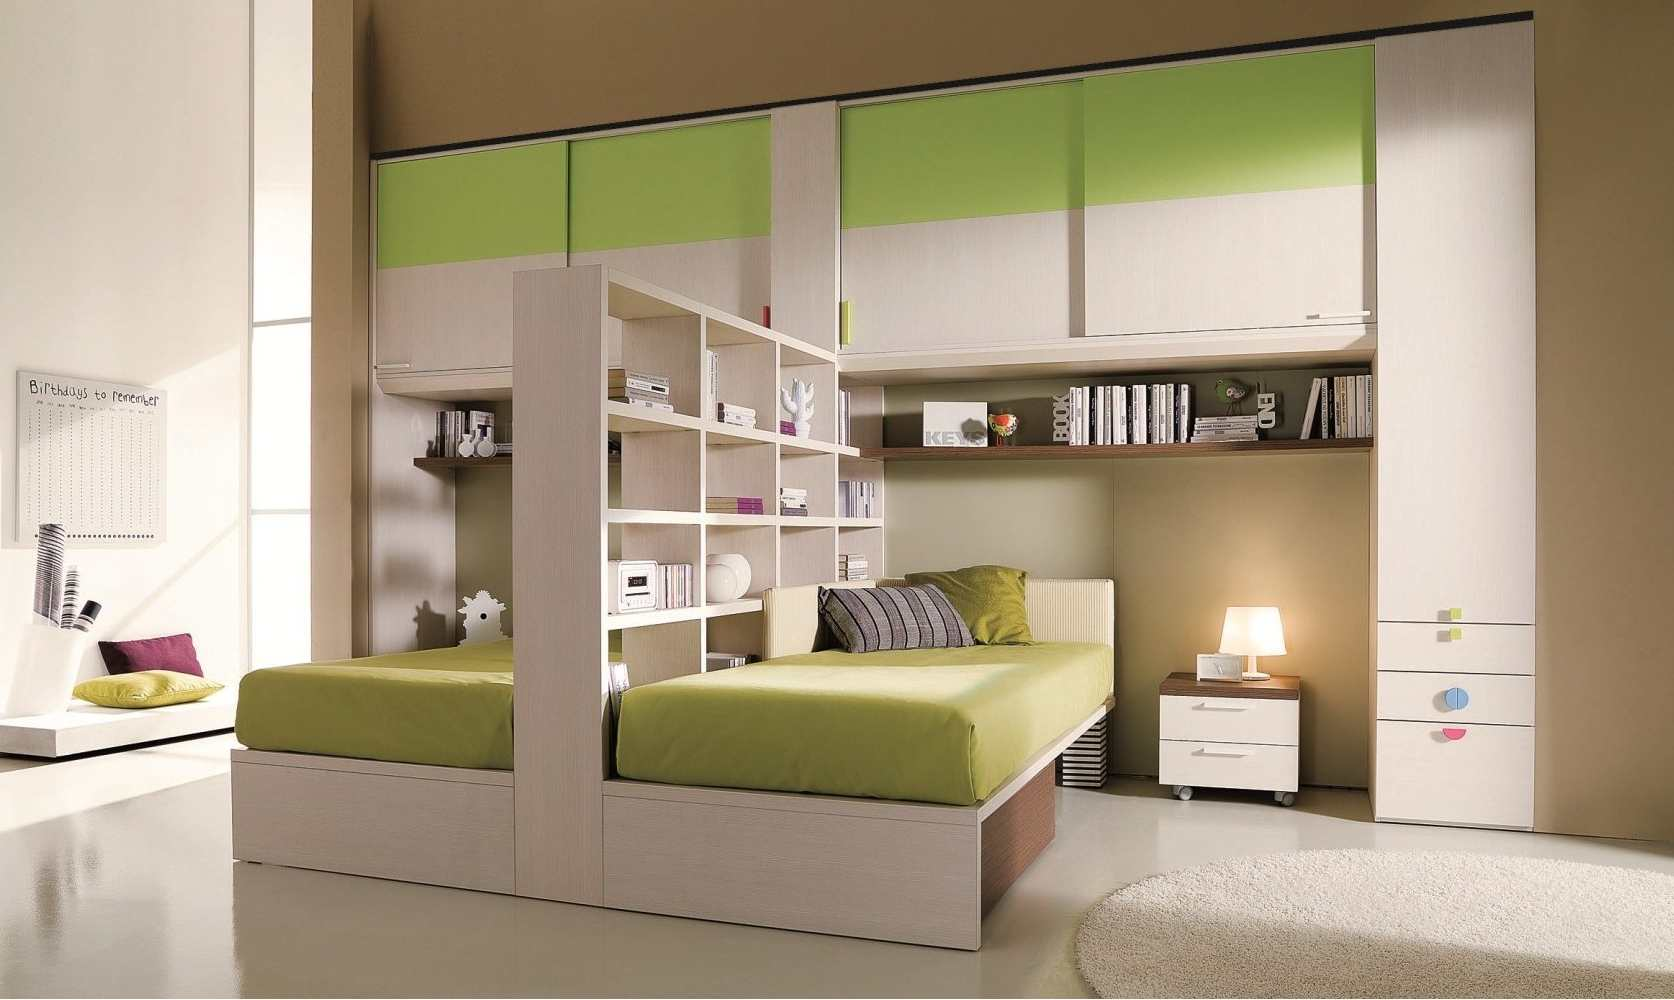 les 20 meilleures id es pour une d coration de chambre d 39 ado unique. Black Bedroom Furniture Sets. Home Design Ideas